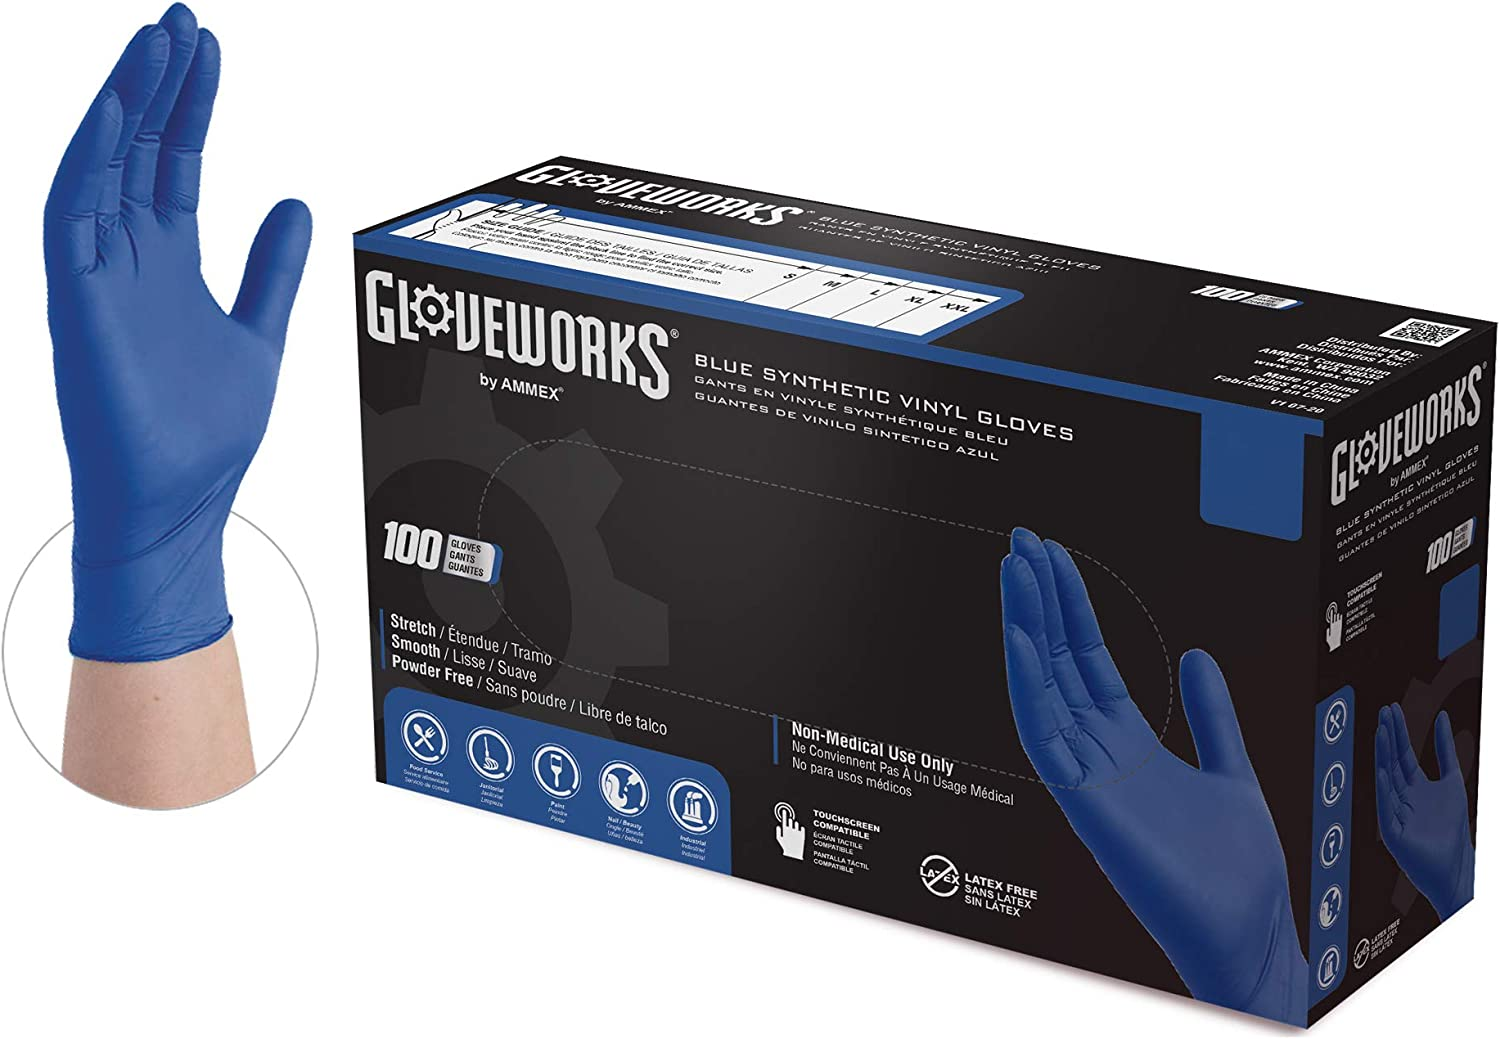 GLOVEWORKS Blue Synthetic Vinyl Industrial Gloves, Box of 100, 3 Mil, Size Large, Latex Free, Powder Free, Disposable, Food Safe, GWQIV46100-BX